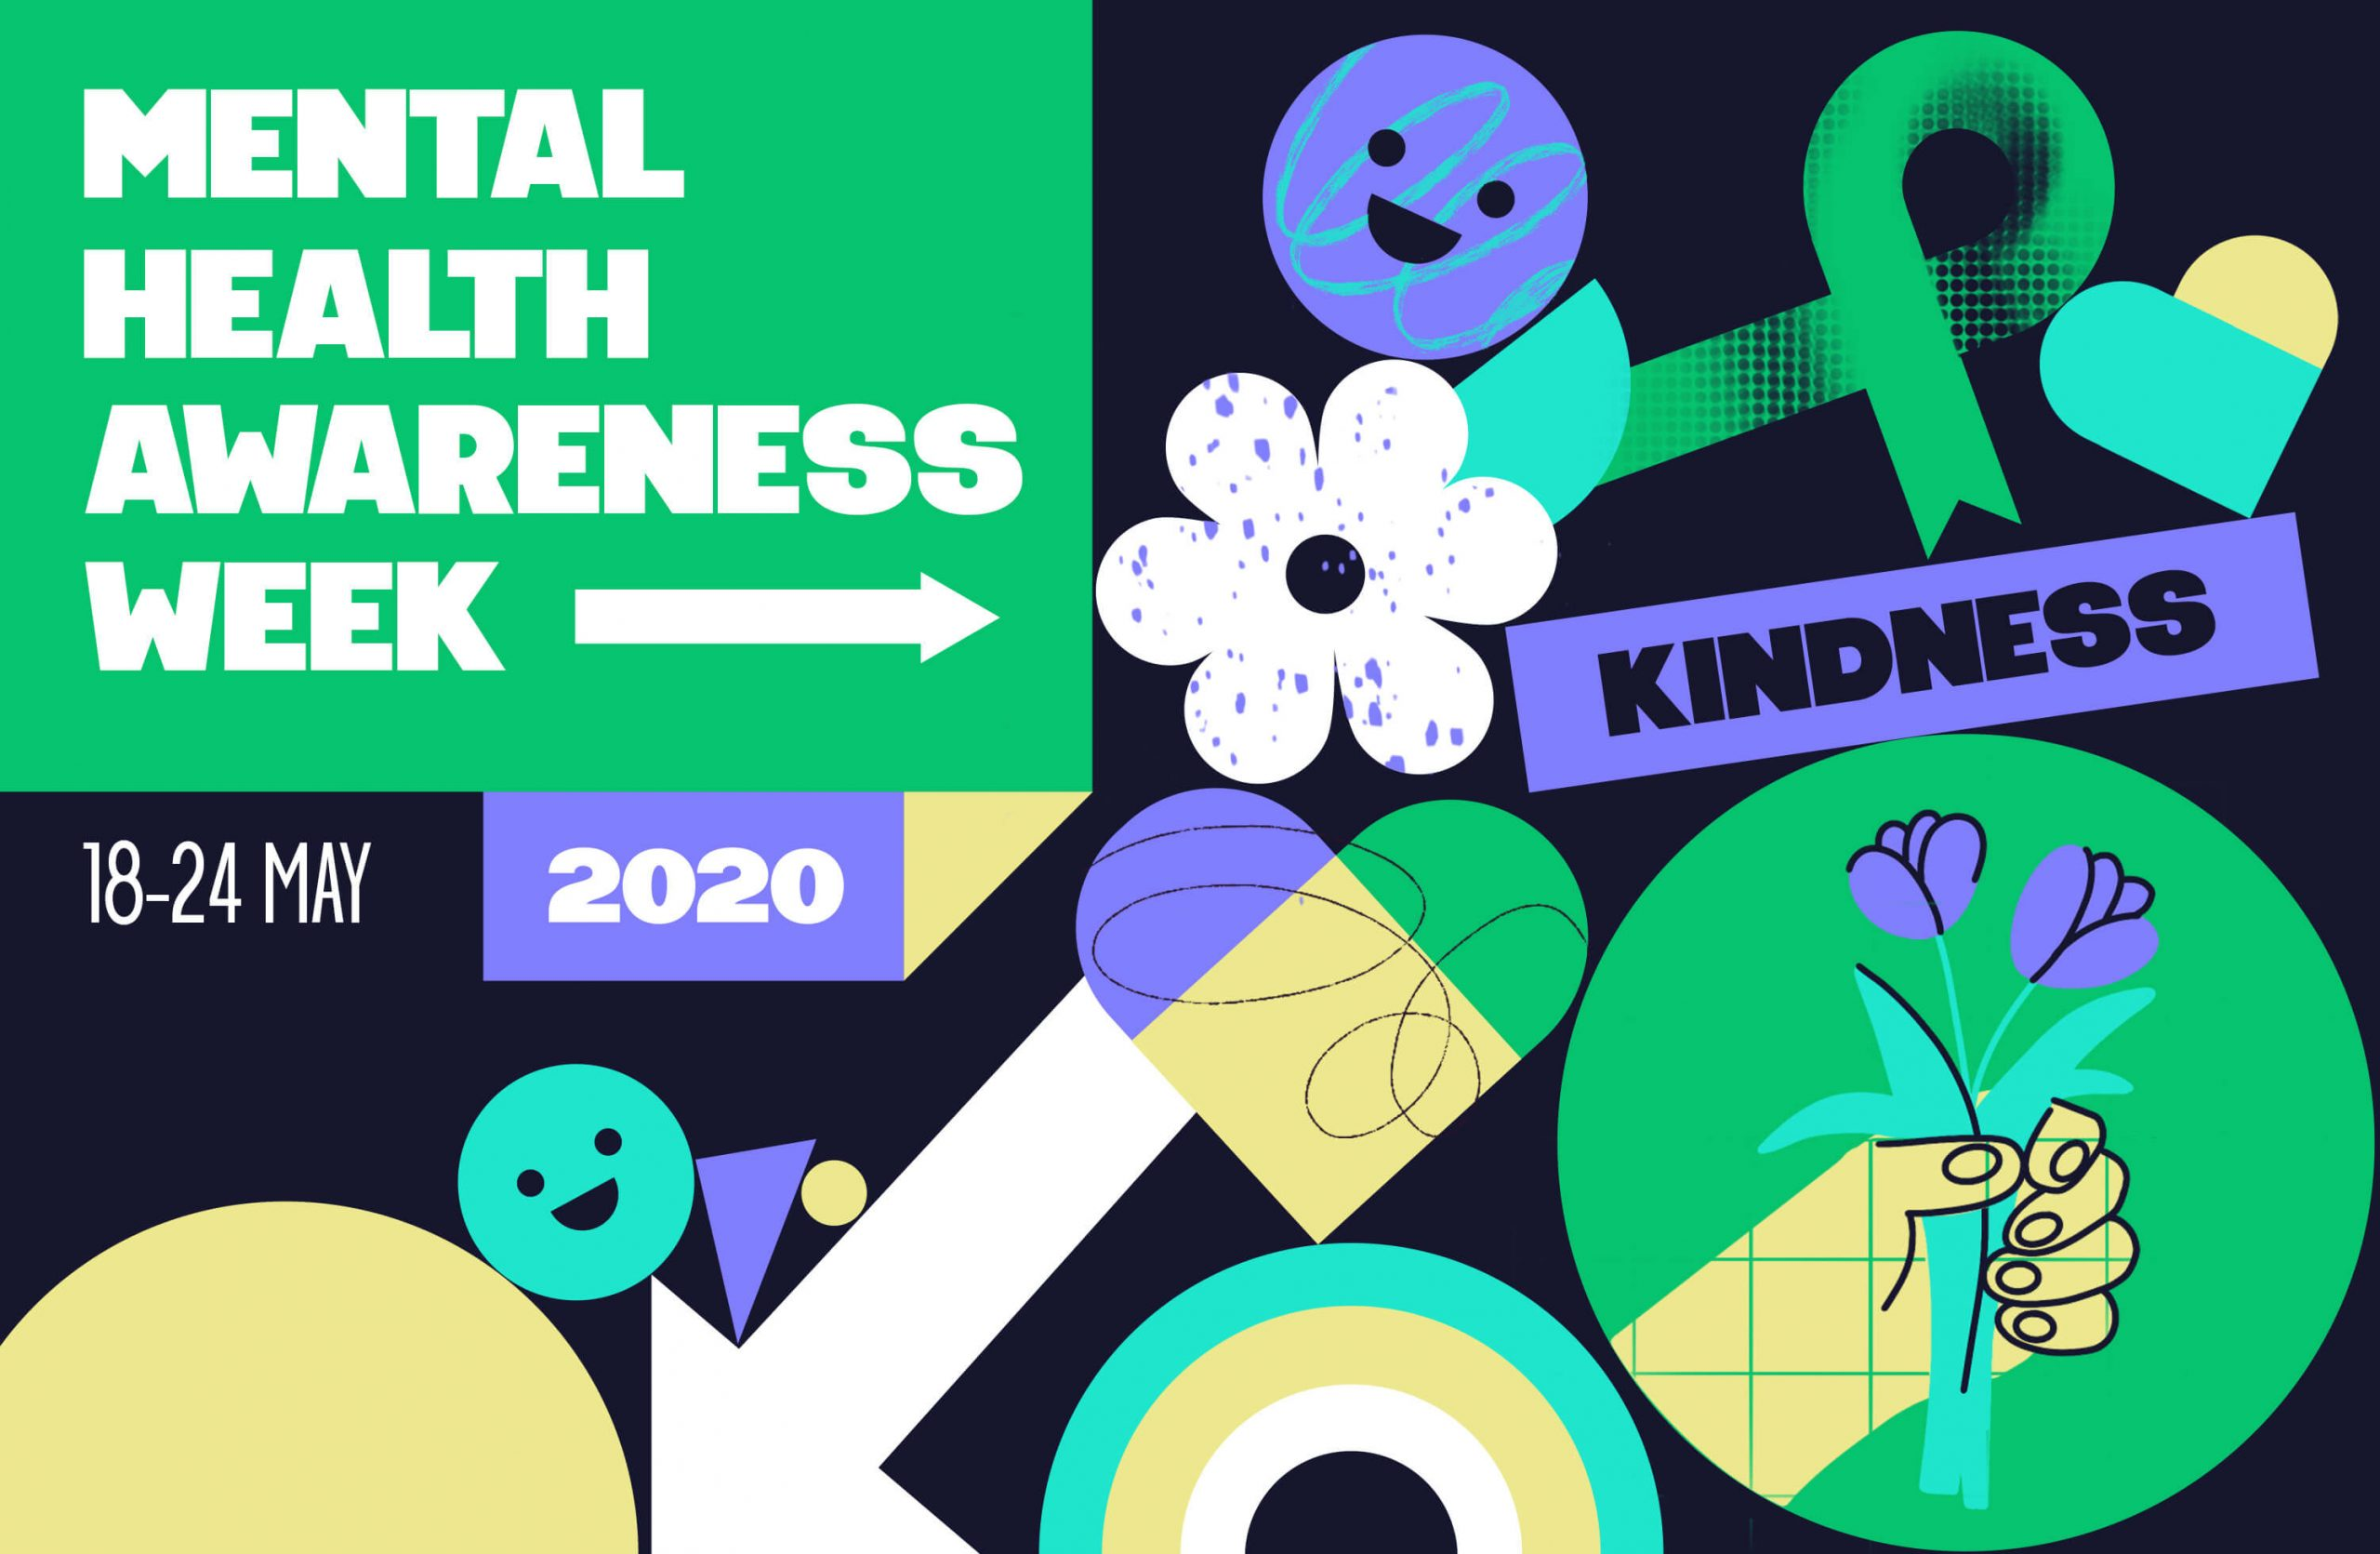 Mental Health Awareness week promotional image, with the word 'Kindness' as the focal point